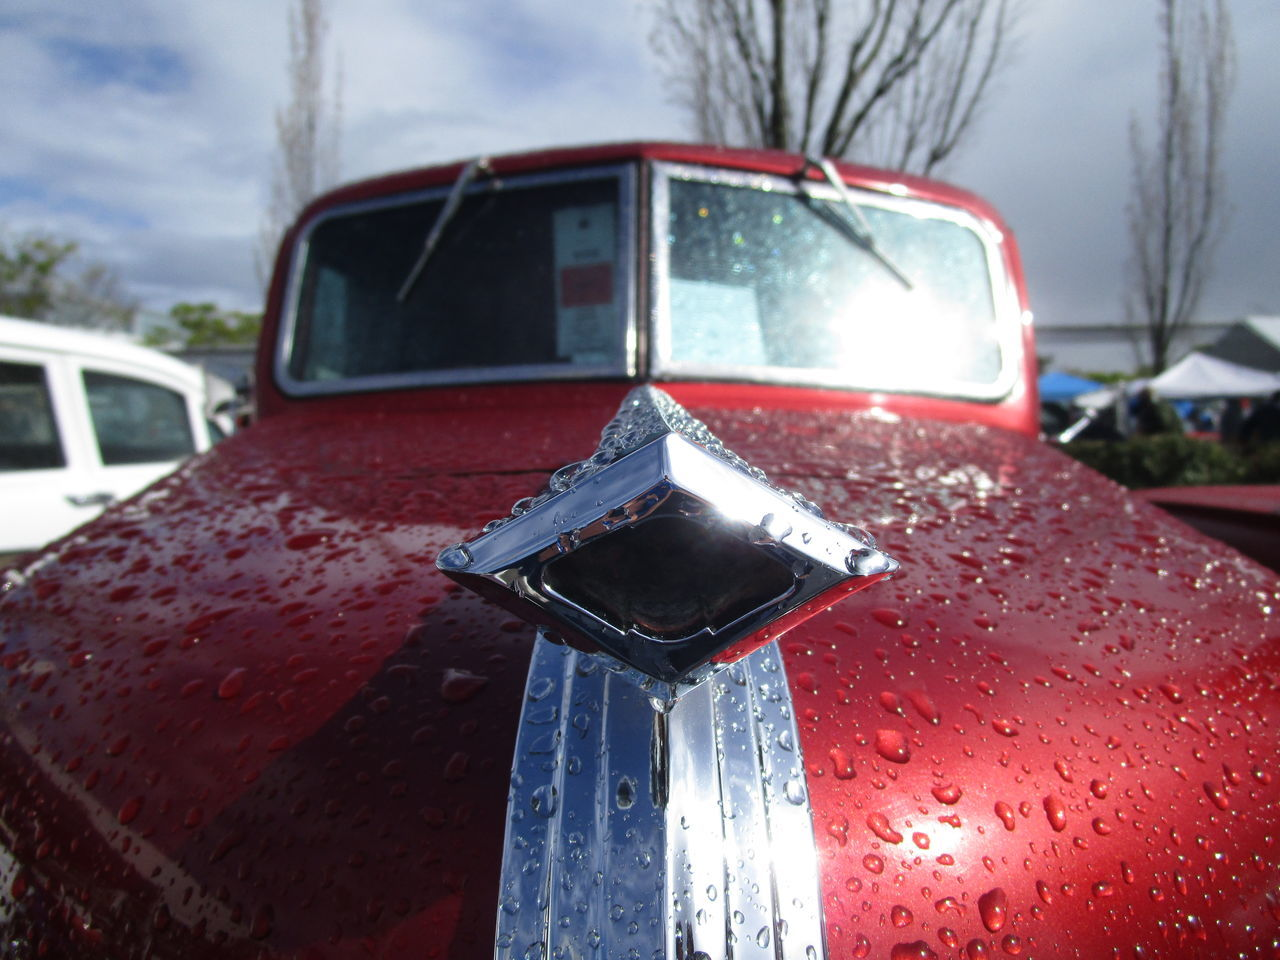 Chrome Day Focus On Foreground Land Vehicle Mode Of Transport No People Old Hood Ornament Outdoors Raindrops Red Tree Vintage Truck Weather Wet